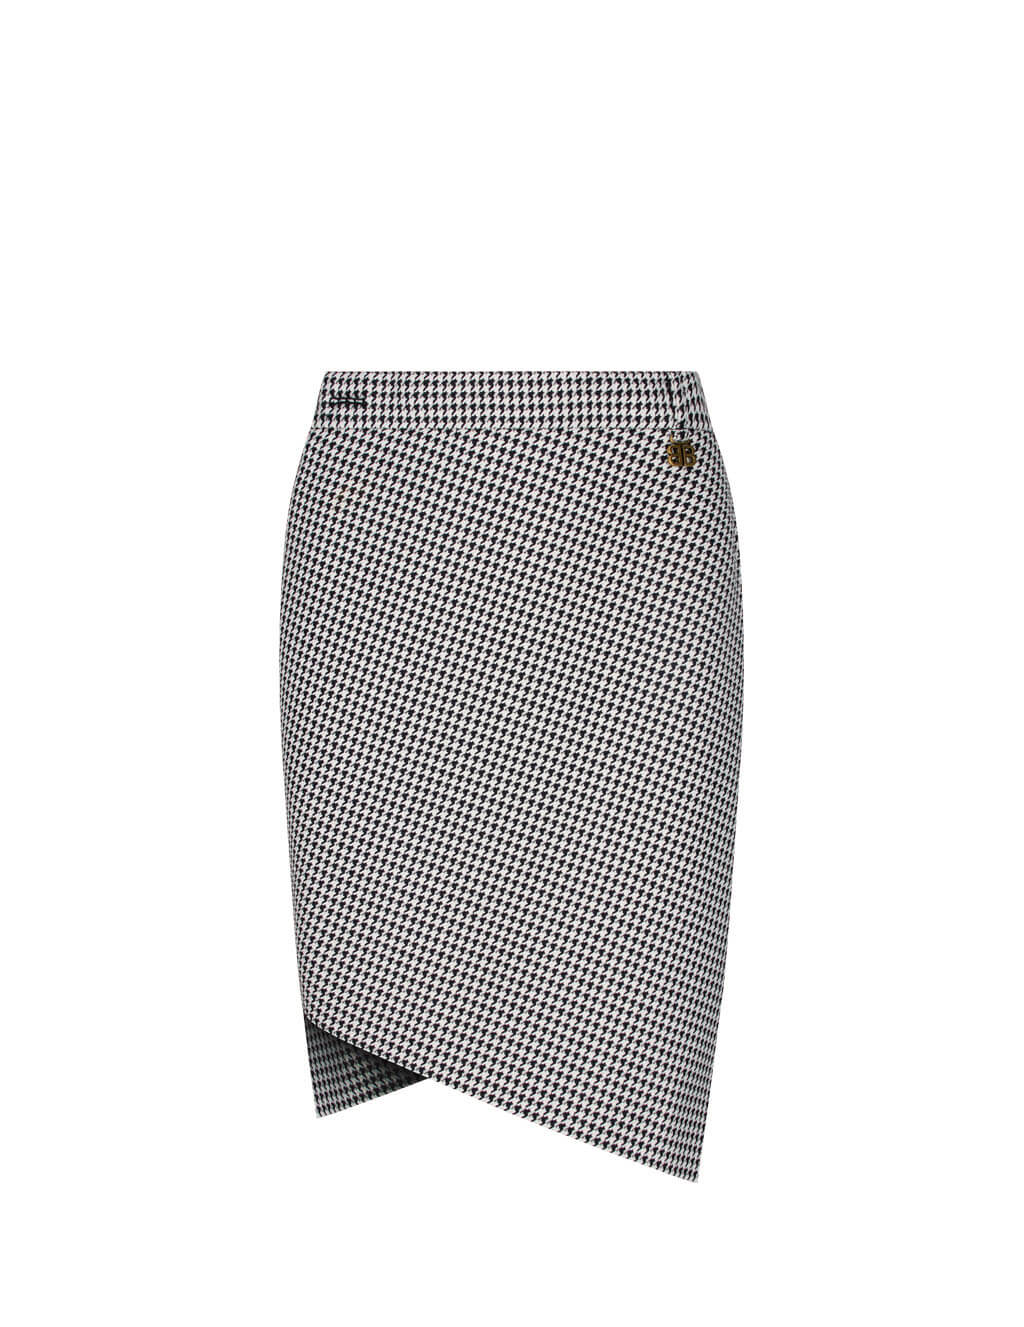 Women's Black and White Balenciaga Houndstooth Twisted Wrap Skirt 621416TIT091070